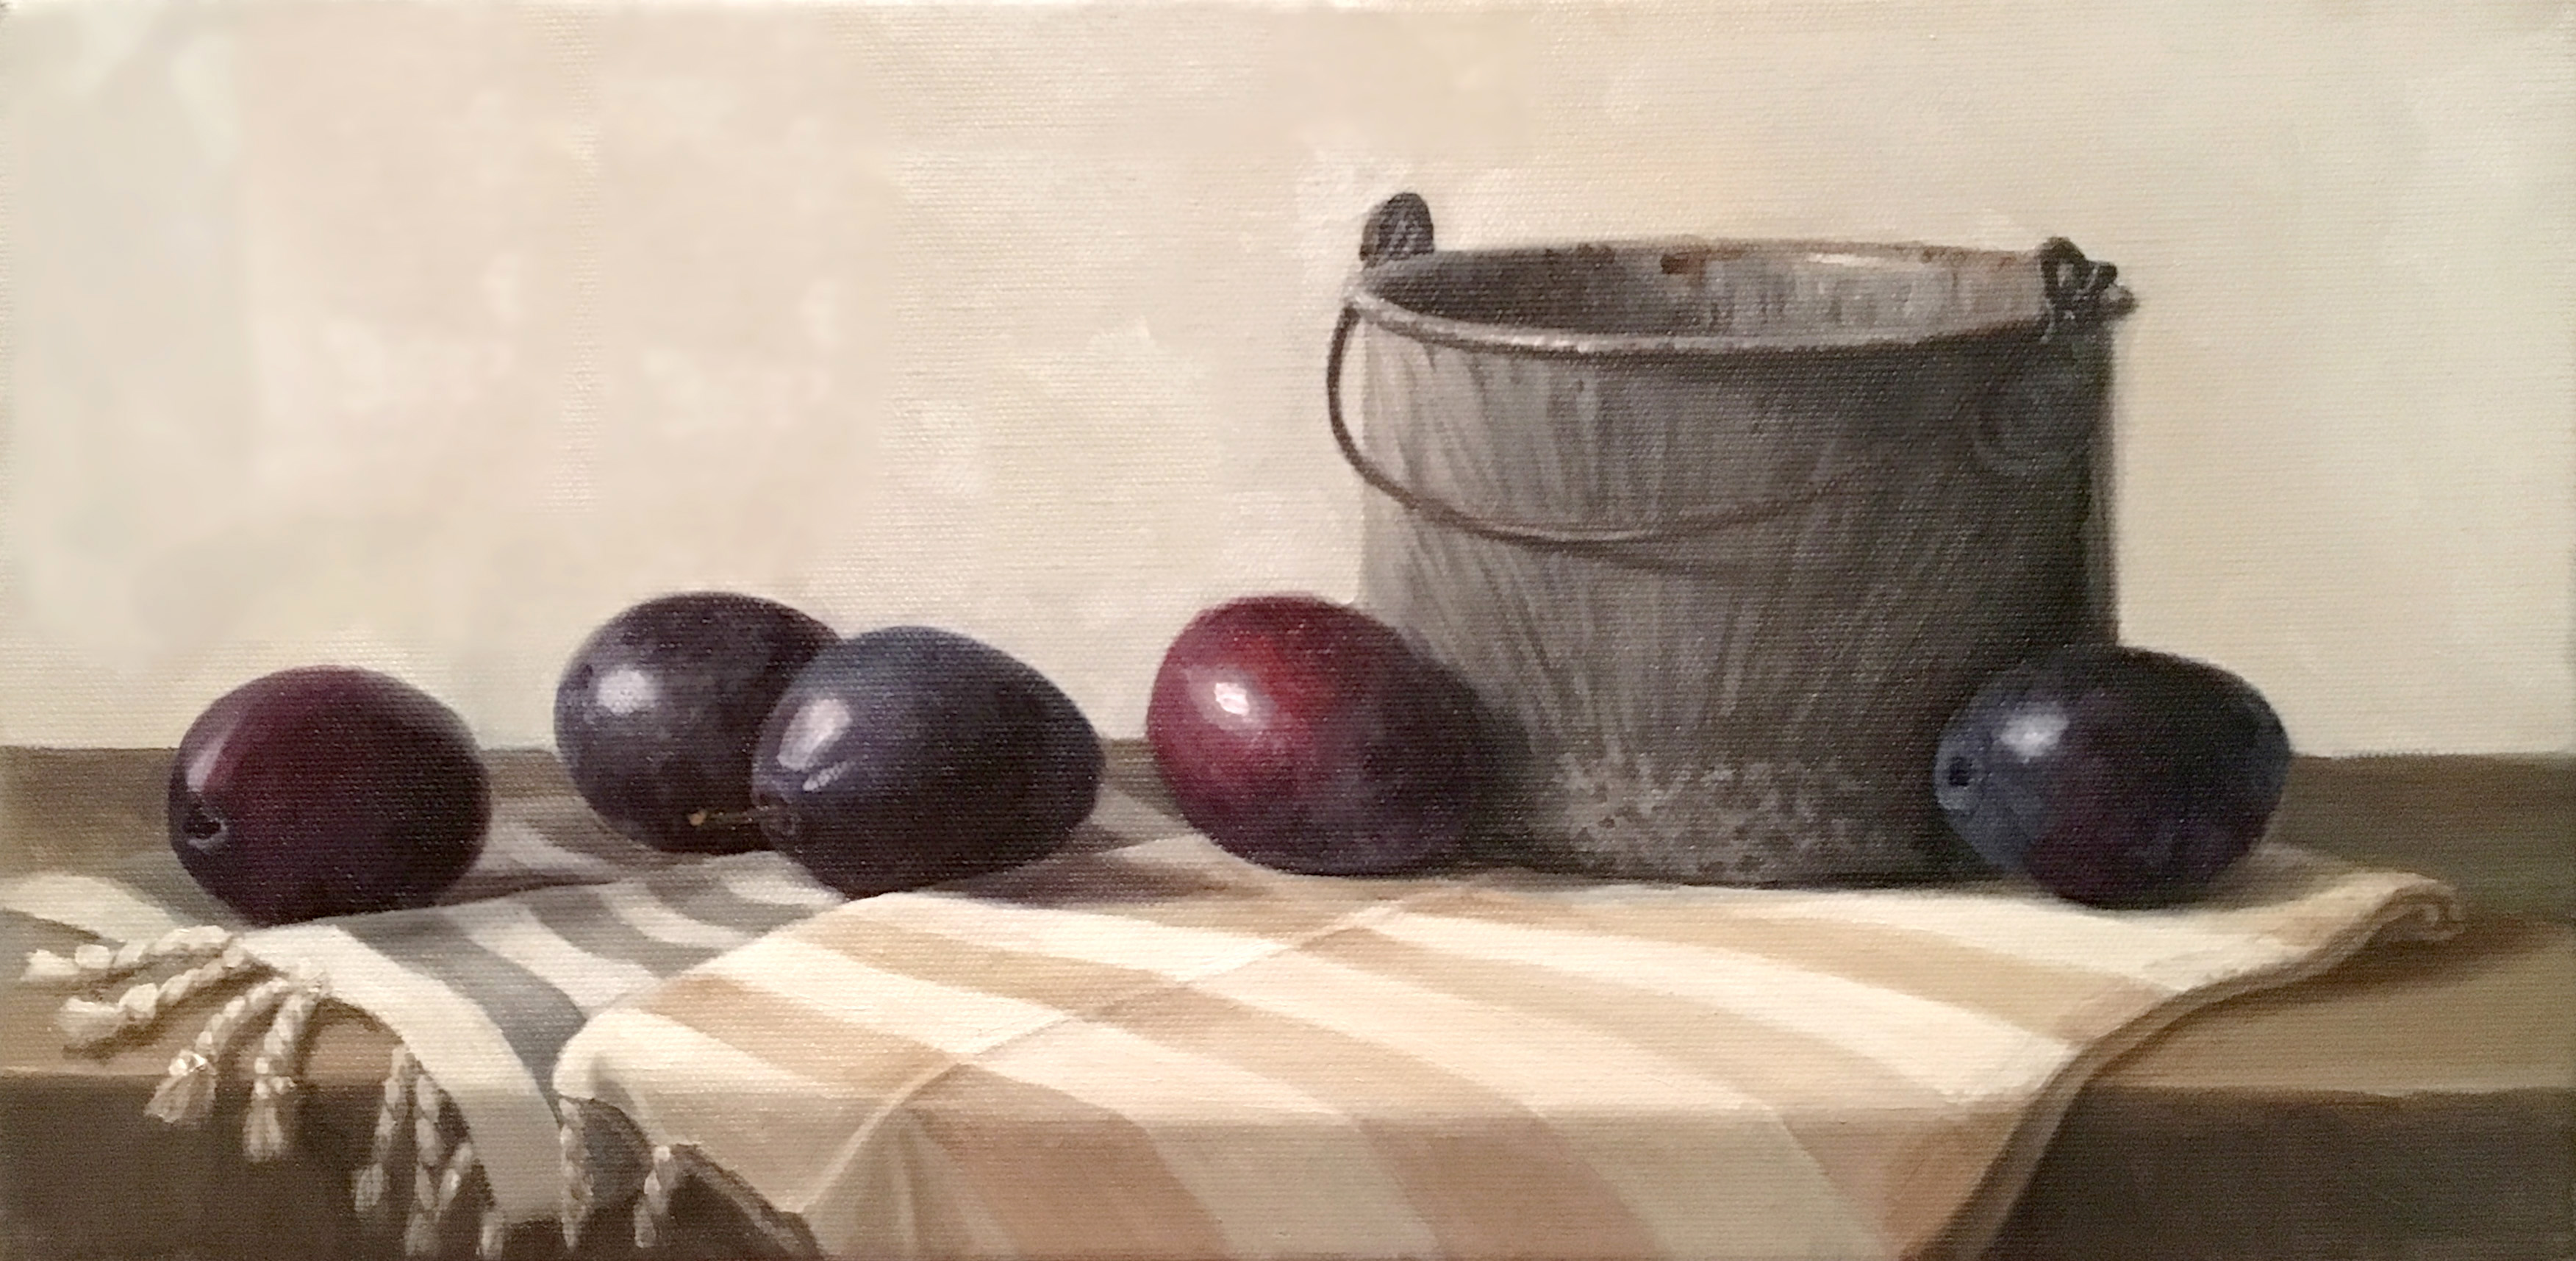 plums in a row